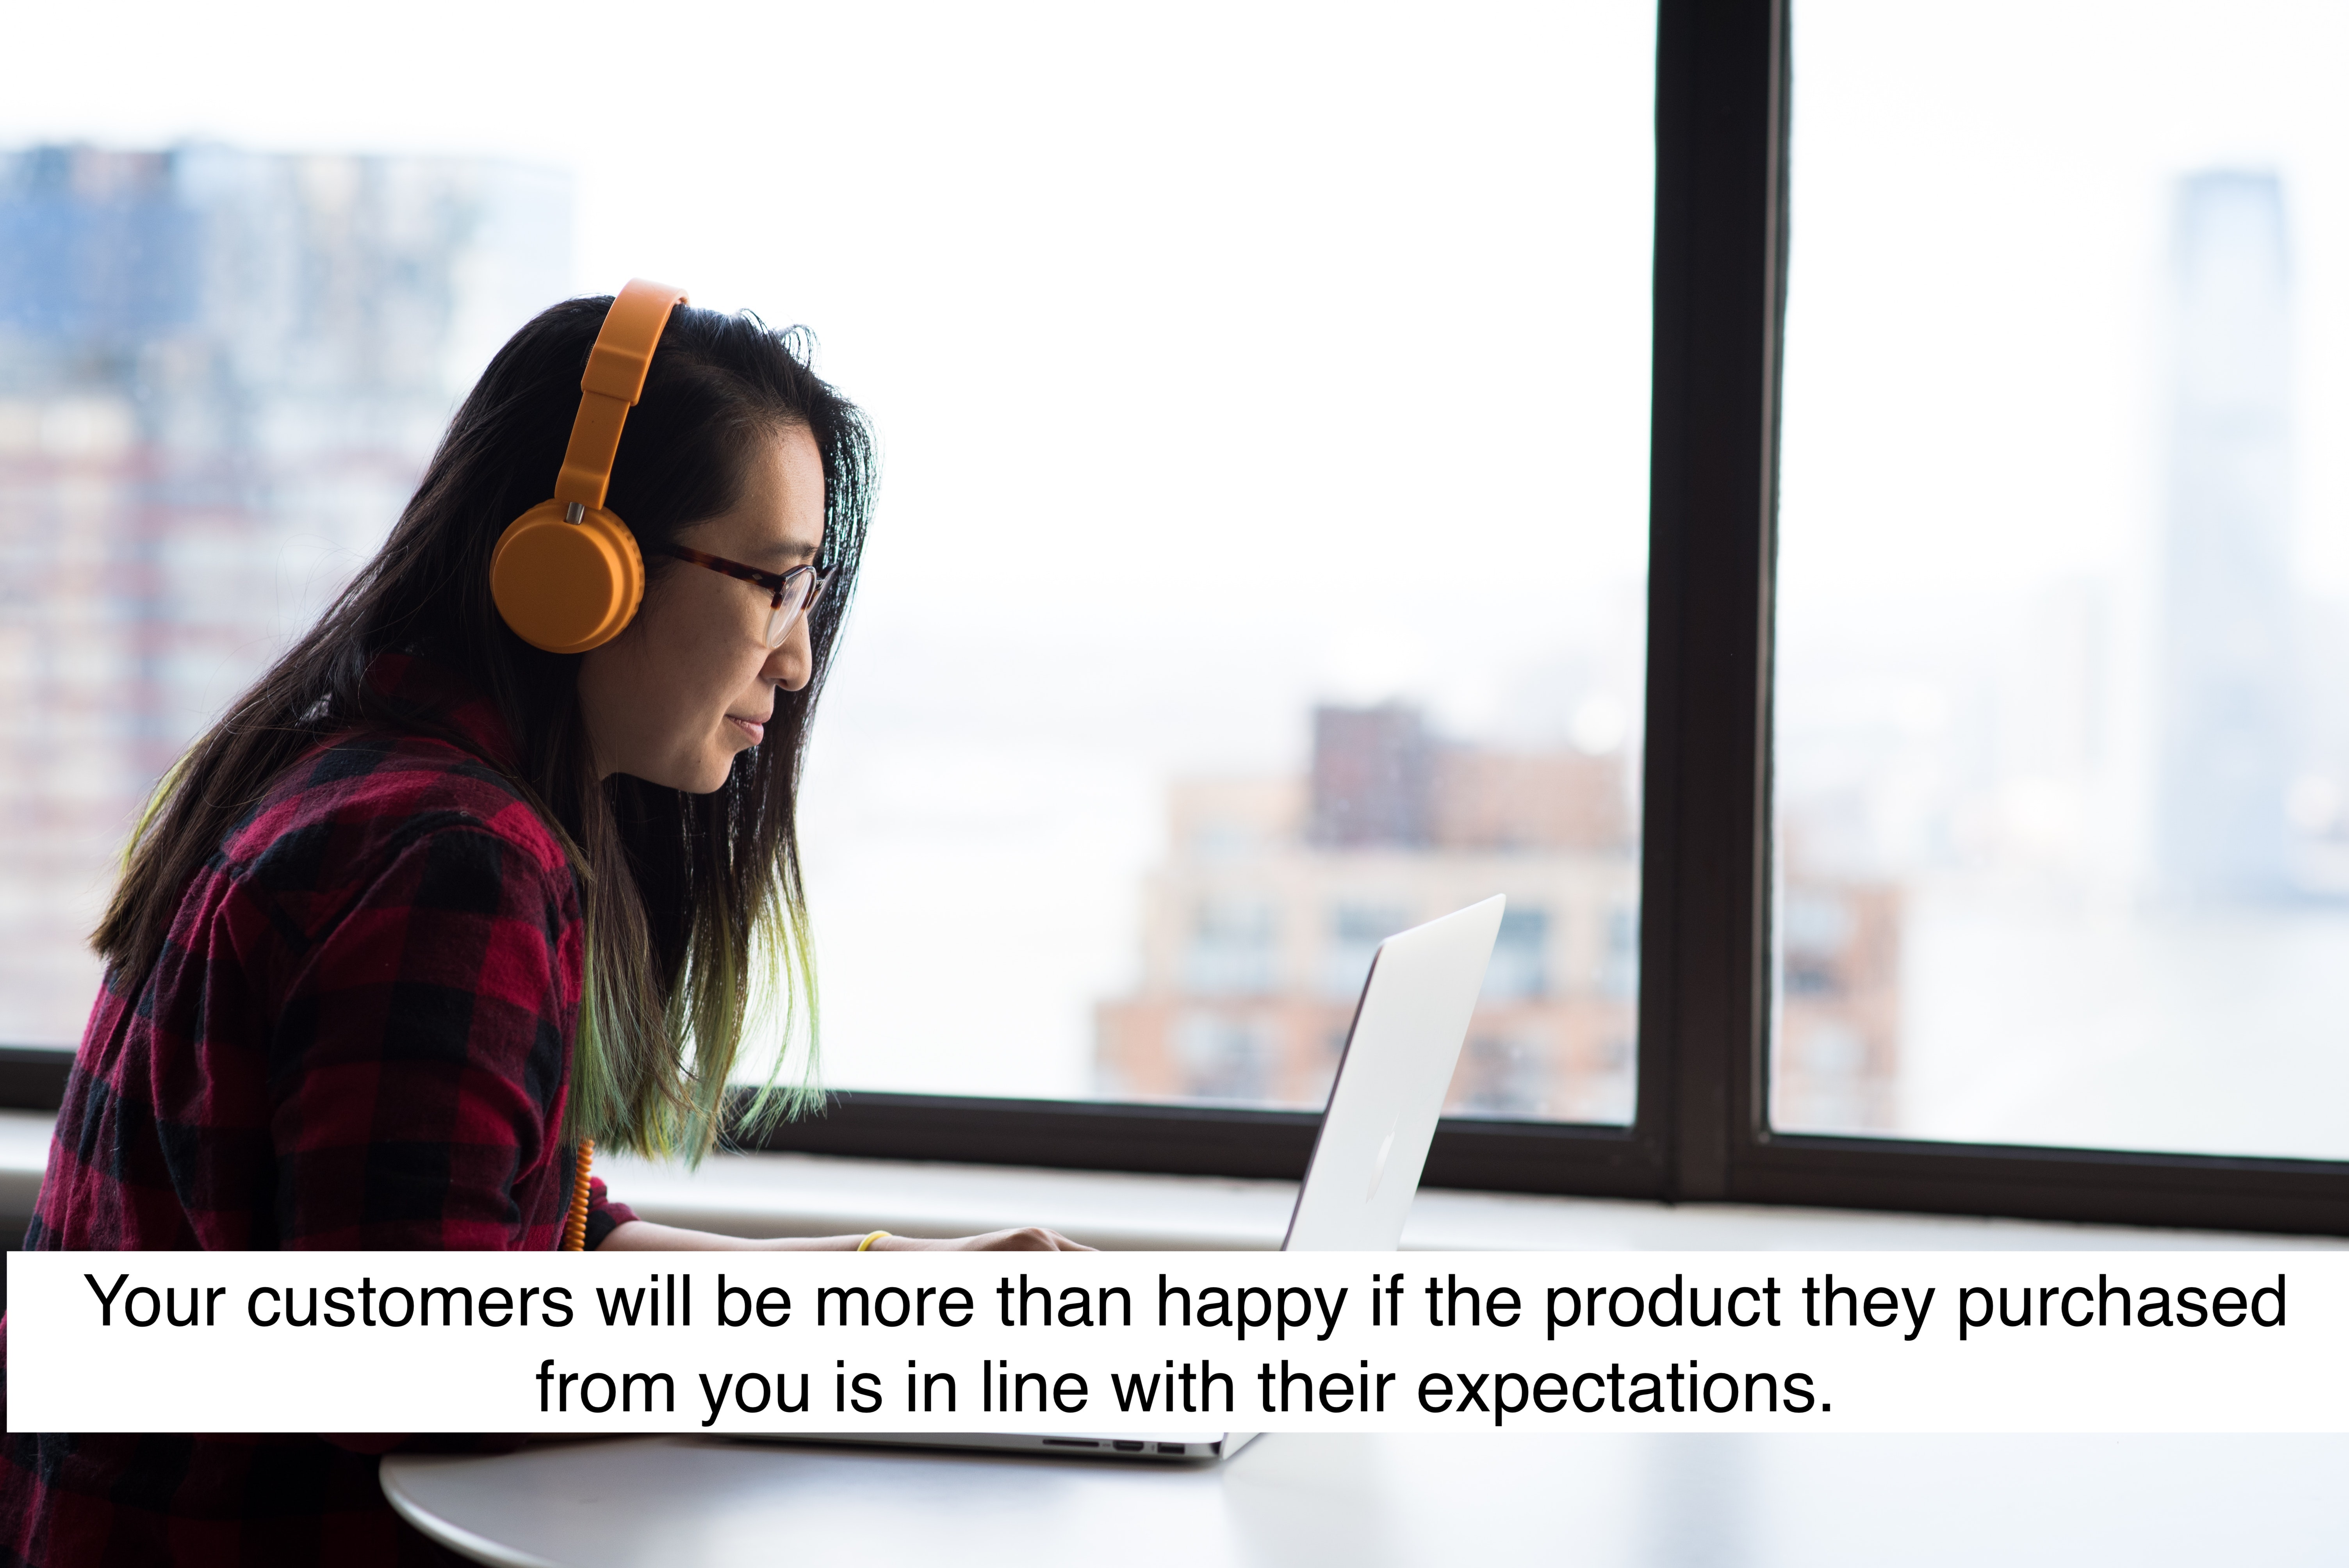 Your customers will be more than happy if the product they purchased from you is in line with their expectations.